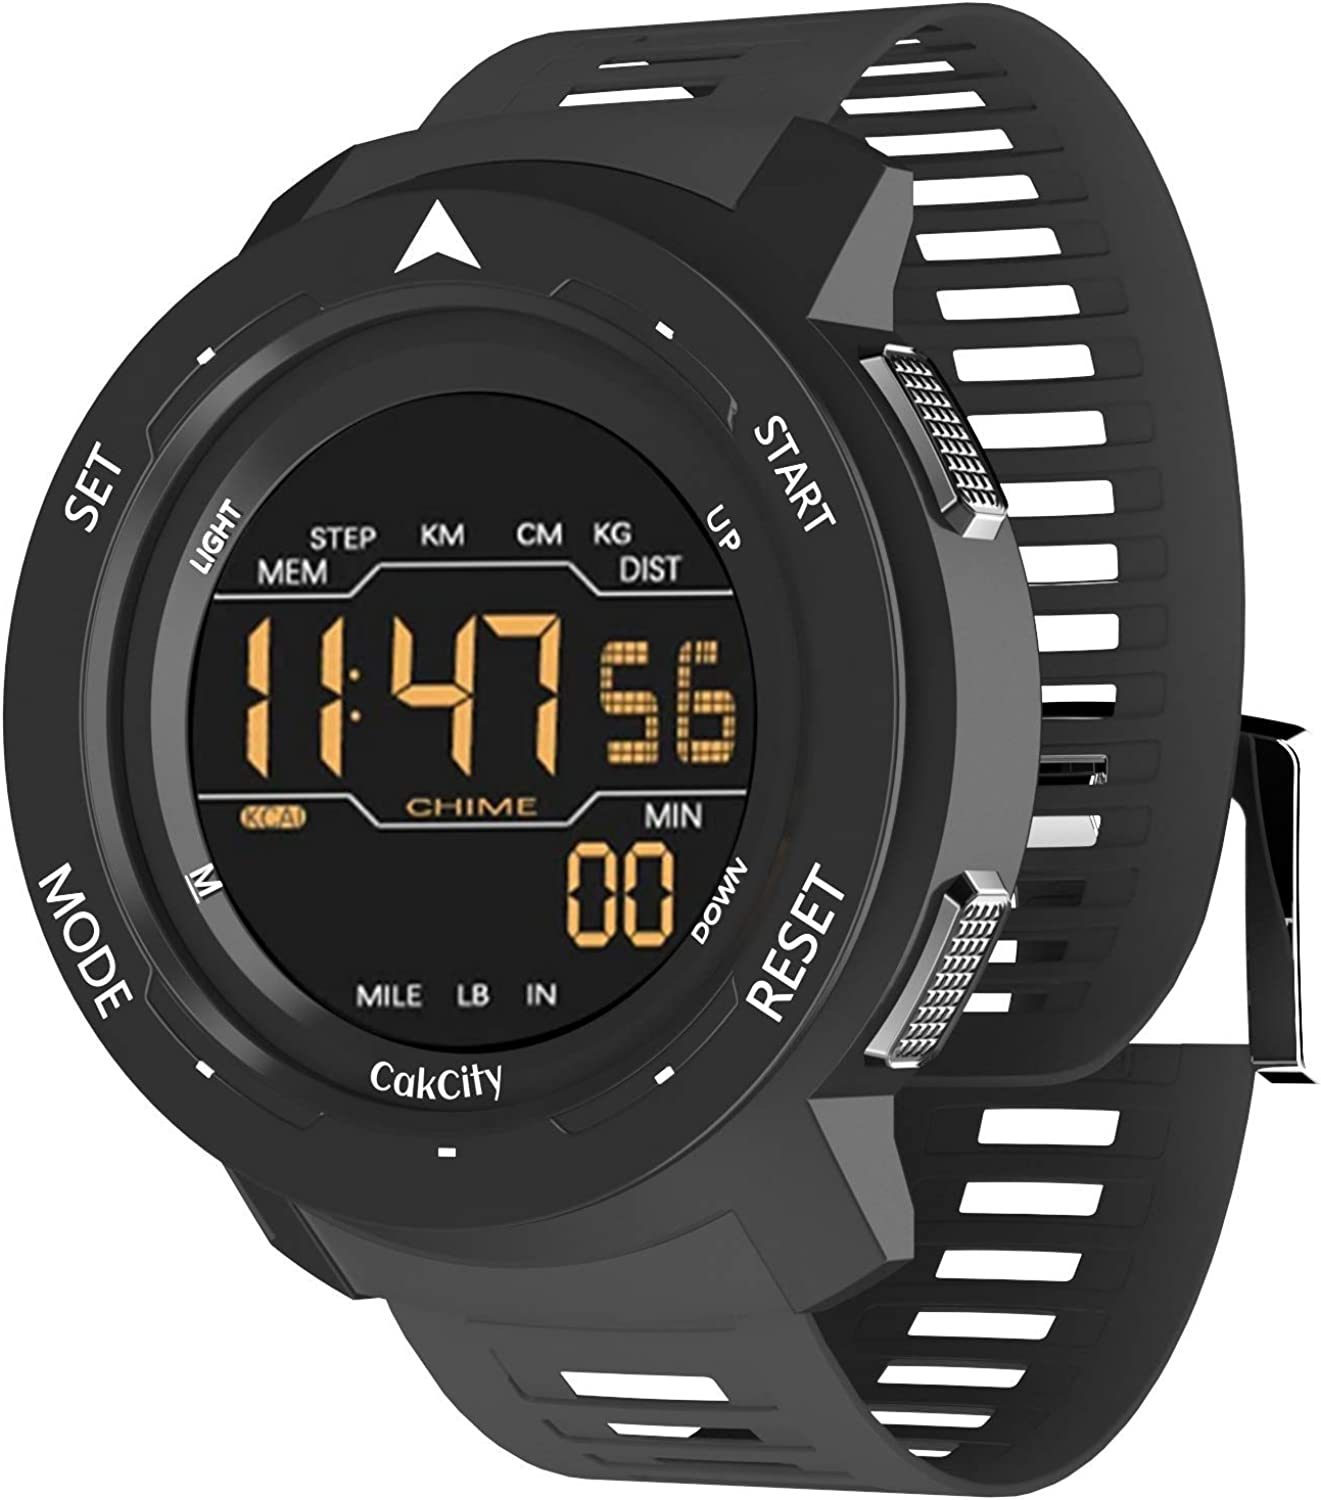 Digital Pedometer Sports Watches for Men with Counting Calories, Alarm, Waterproof, Super Light, Model: Mars